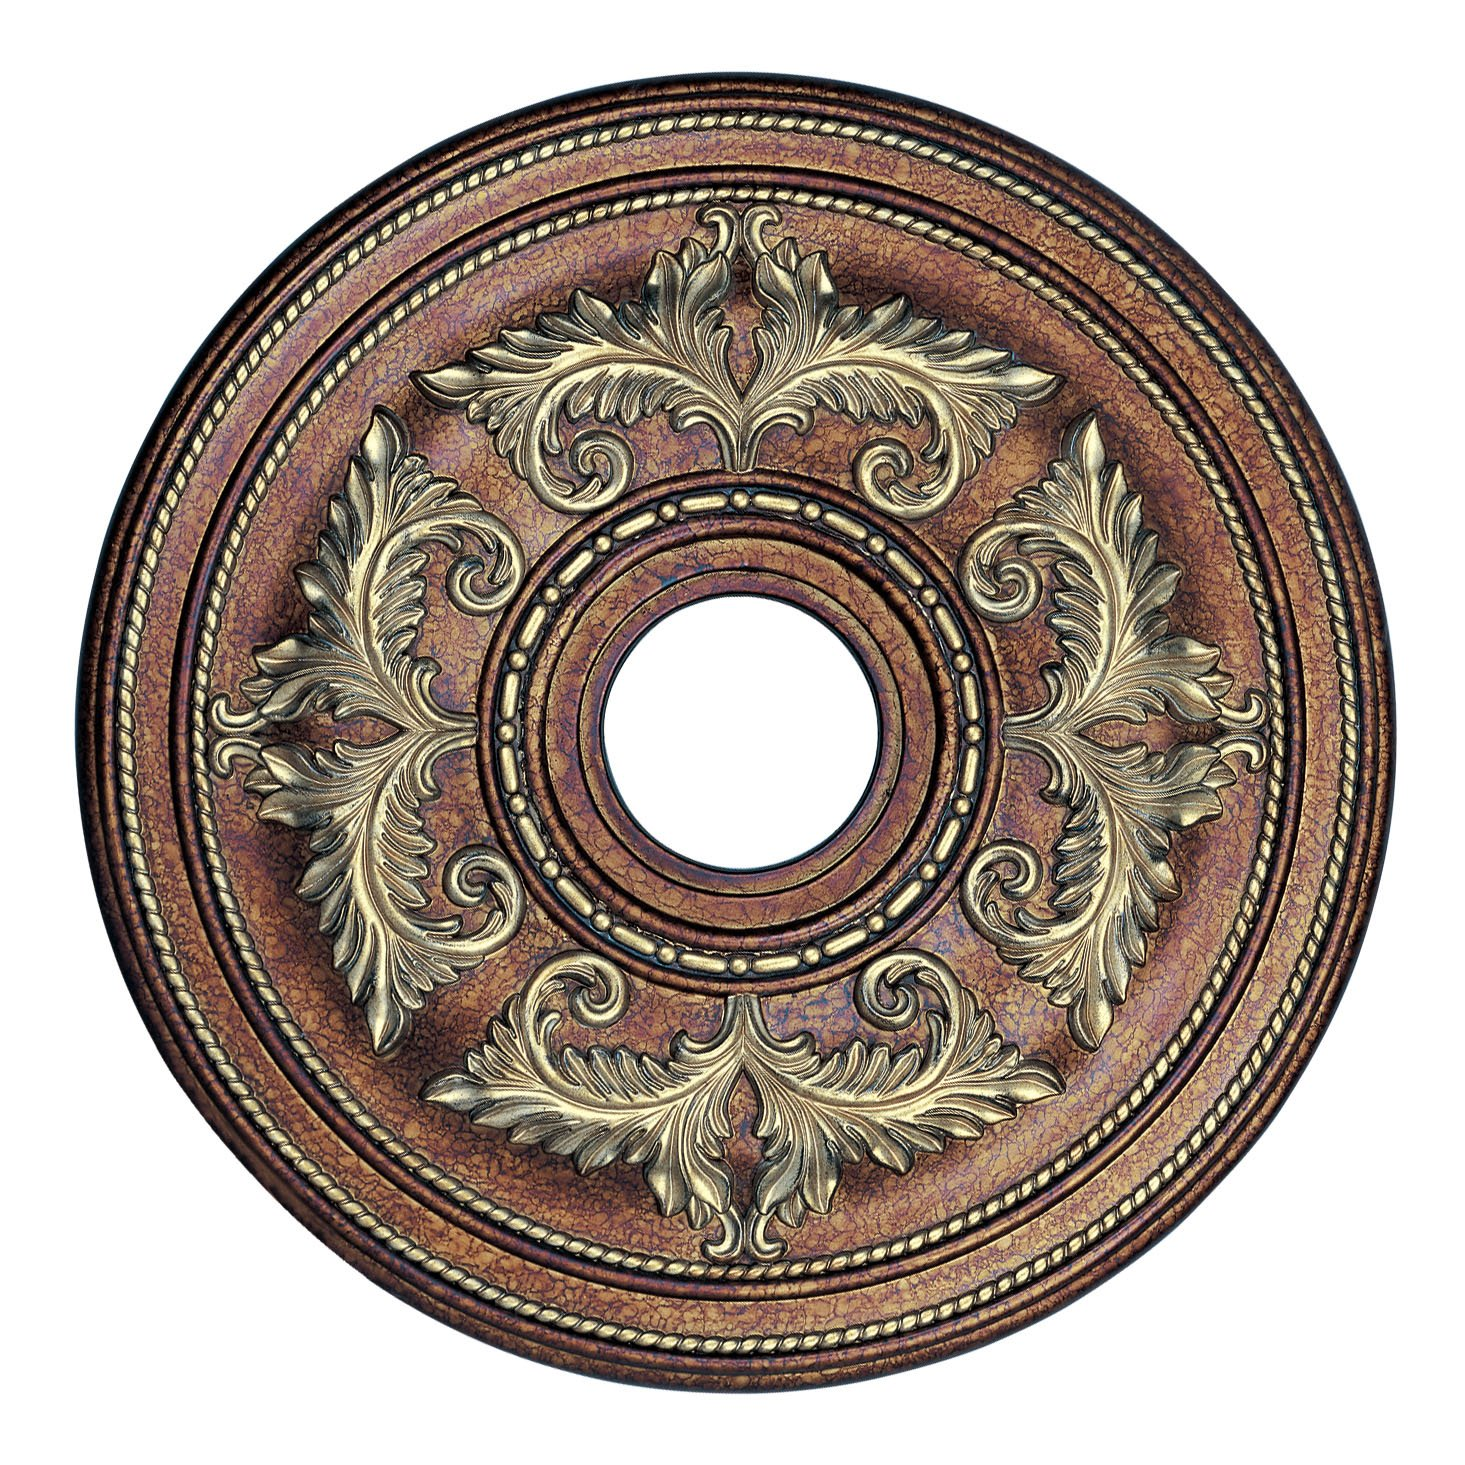 Livex Lighting 8200-64 Ceiling Medallion in Palacial Bronze with Gilded Accents by Livex Lighting